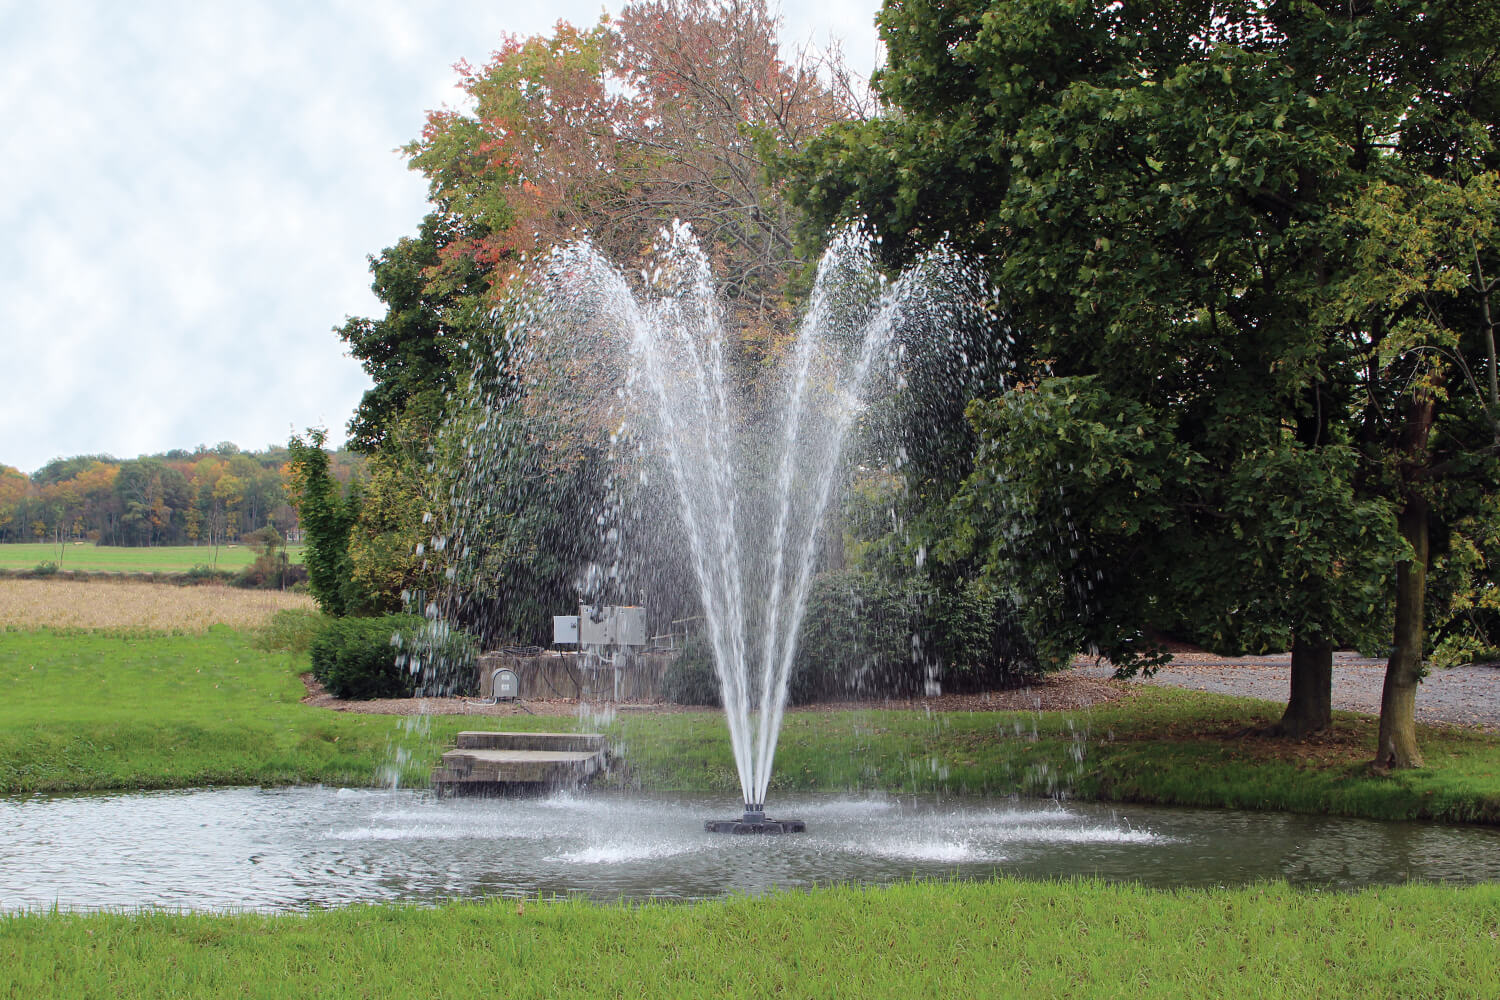 One of Otterbine's Omega Aerating Arch Fountains